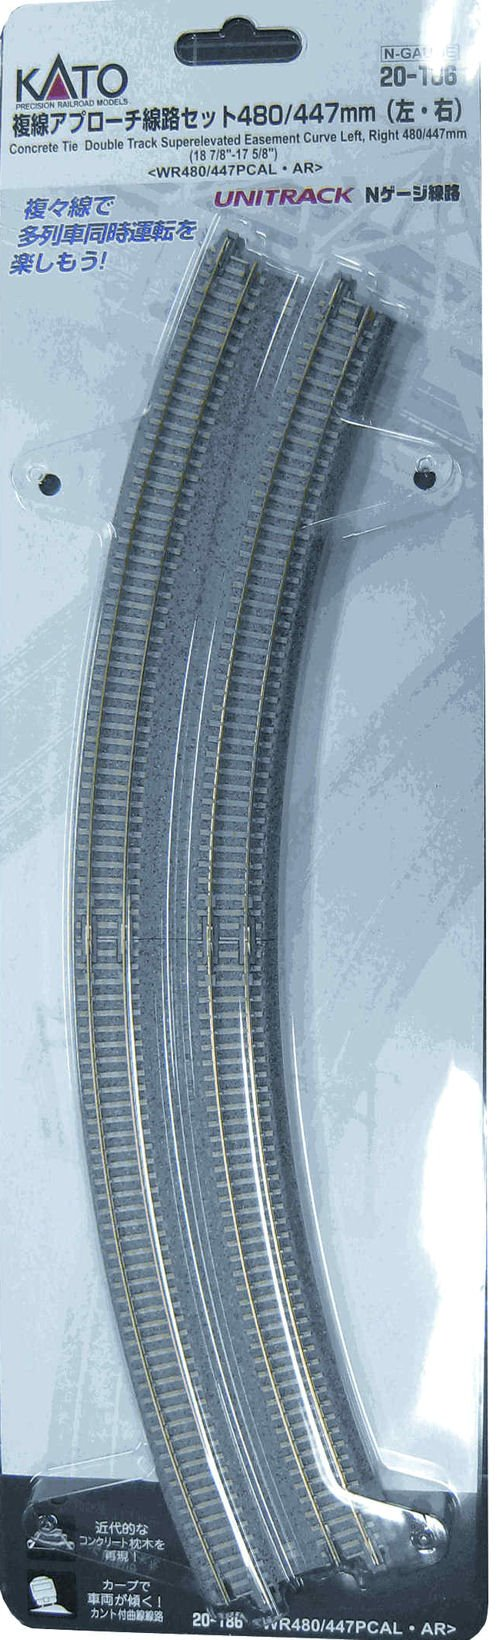 Kato 20-186 R480/447 Double Track Approach Set